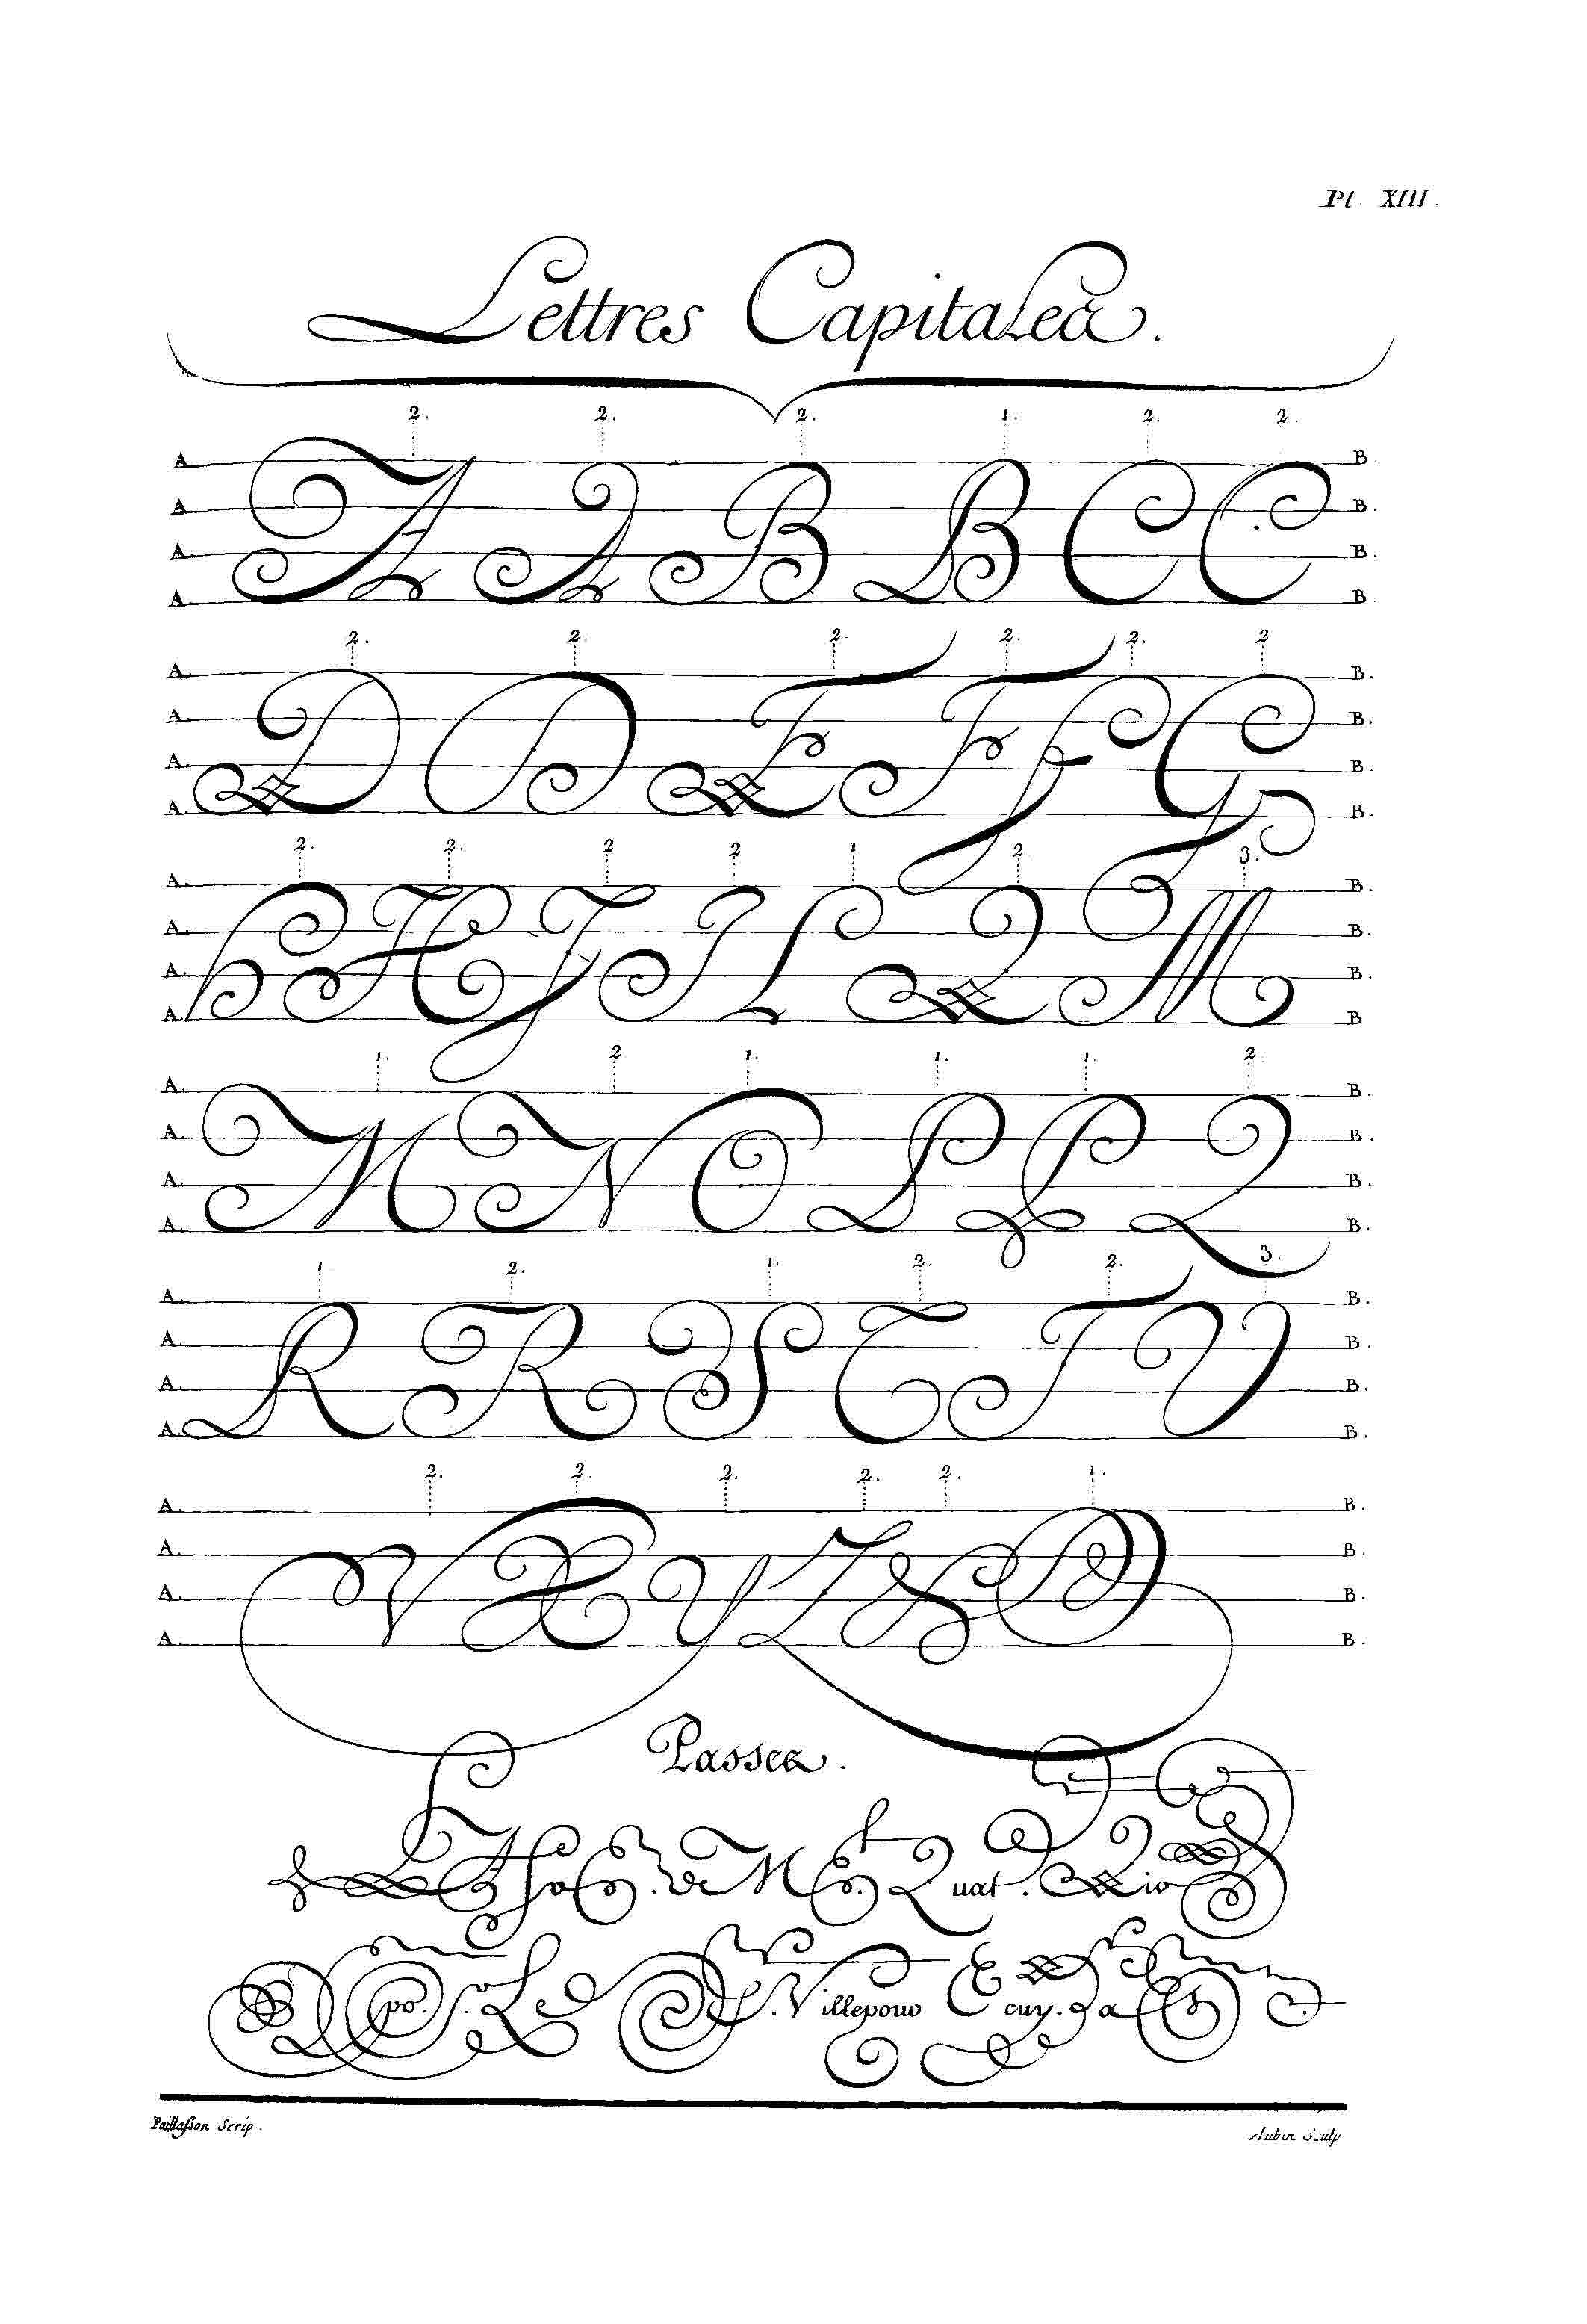 Fabuleux letters | designs | Pinterest | Google images, Fonts and Calligraphy KH97